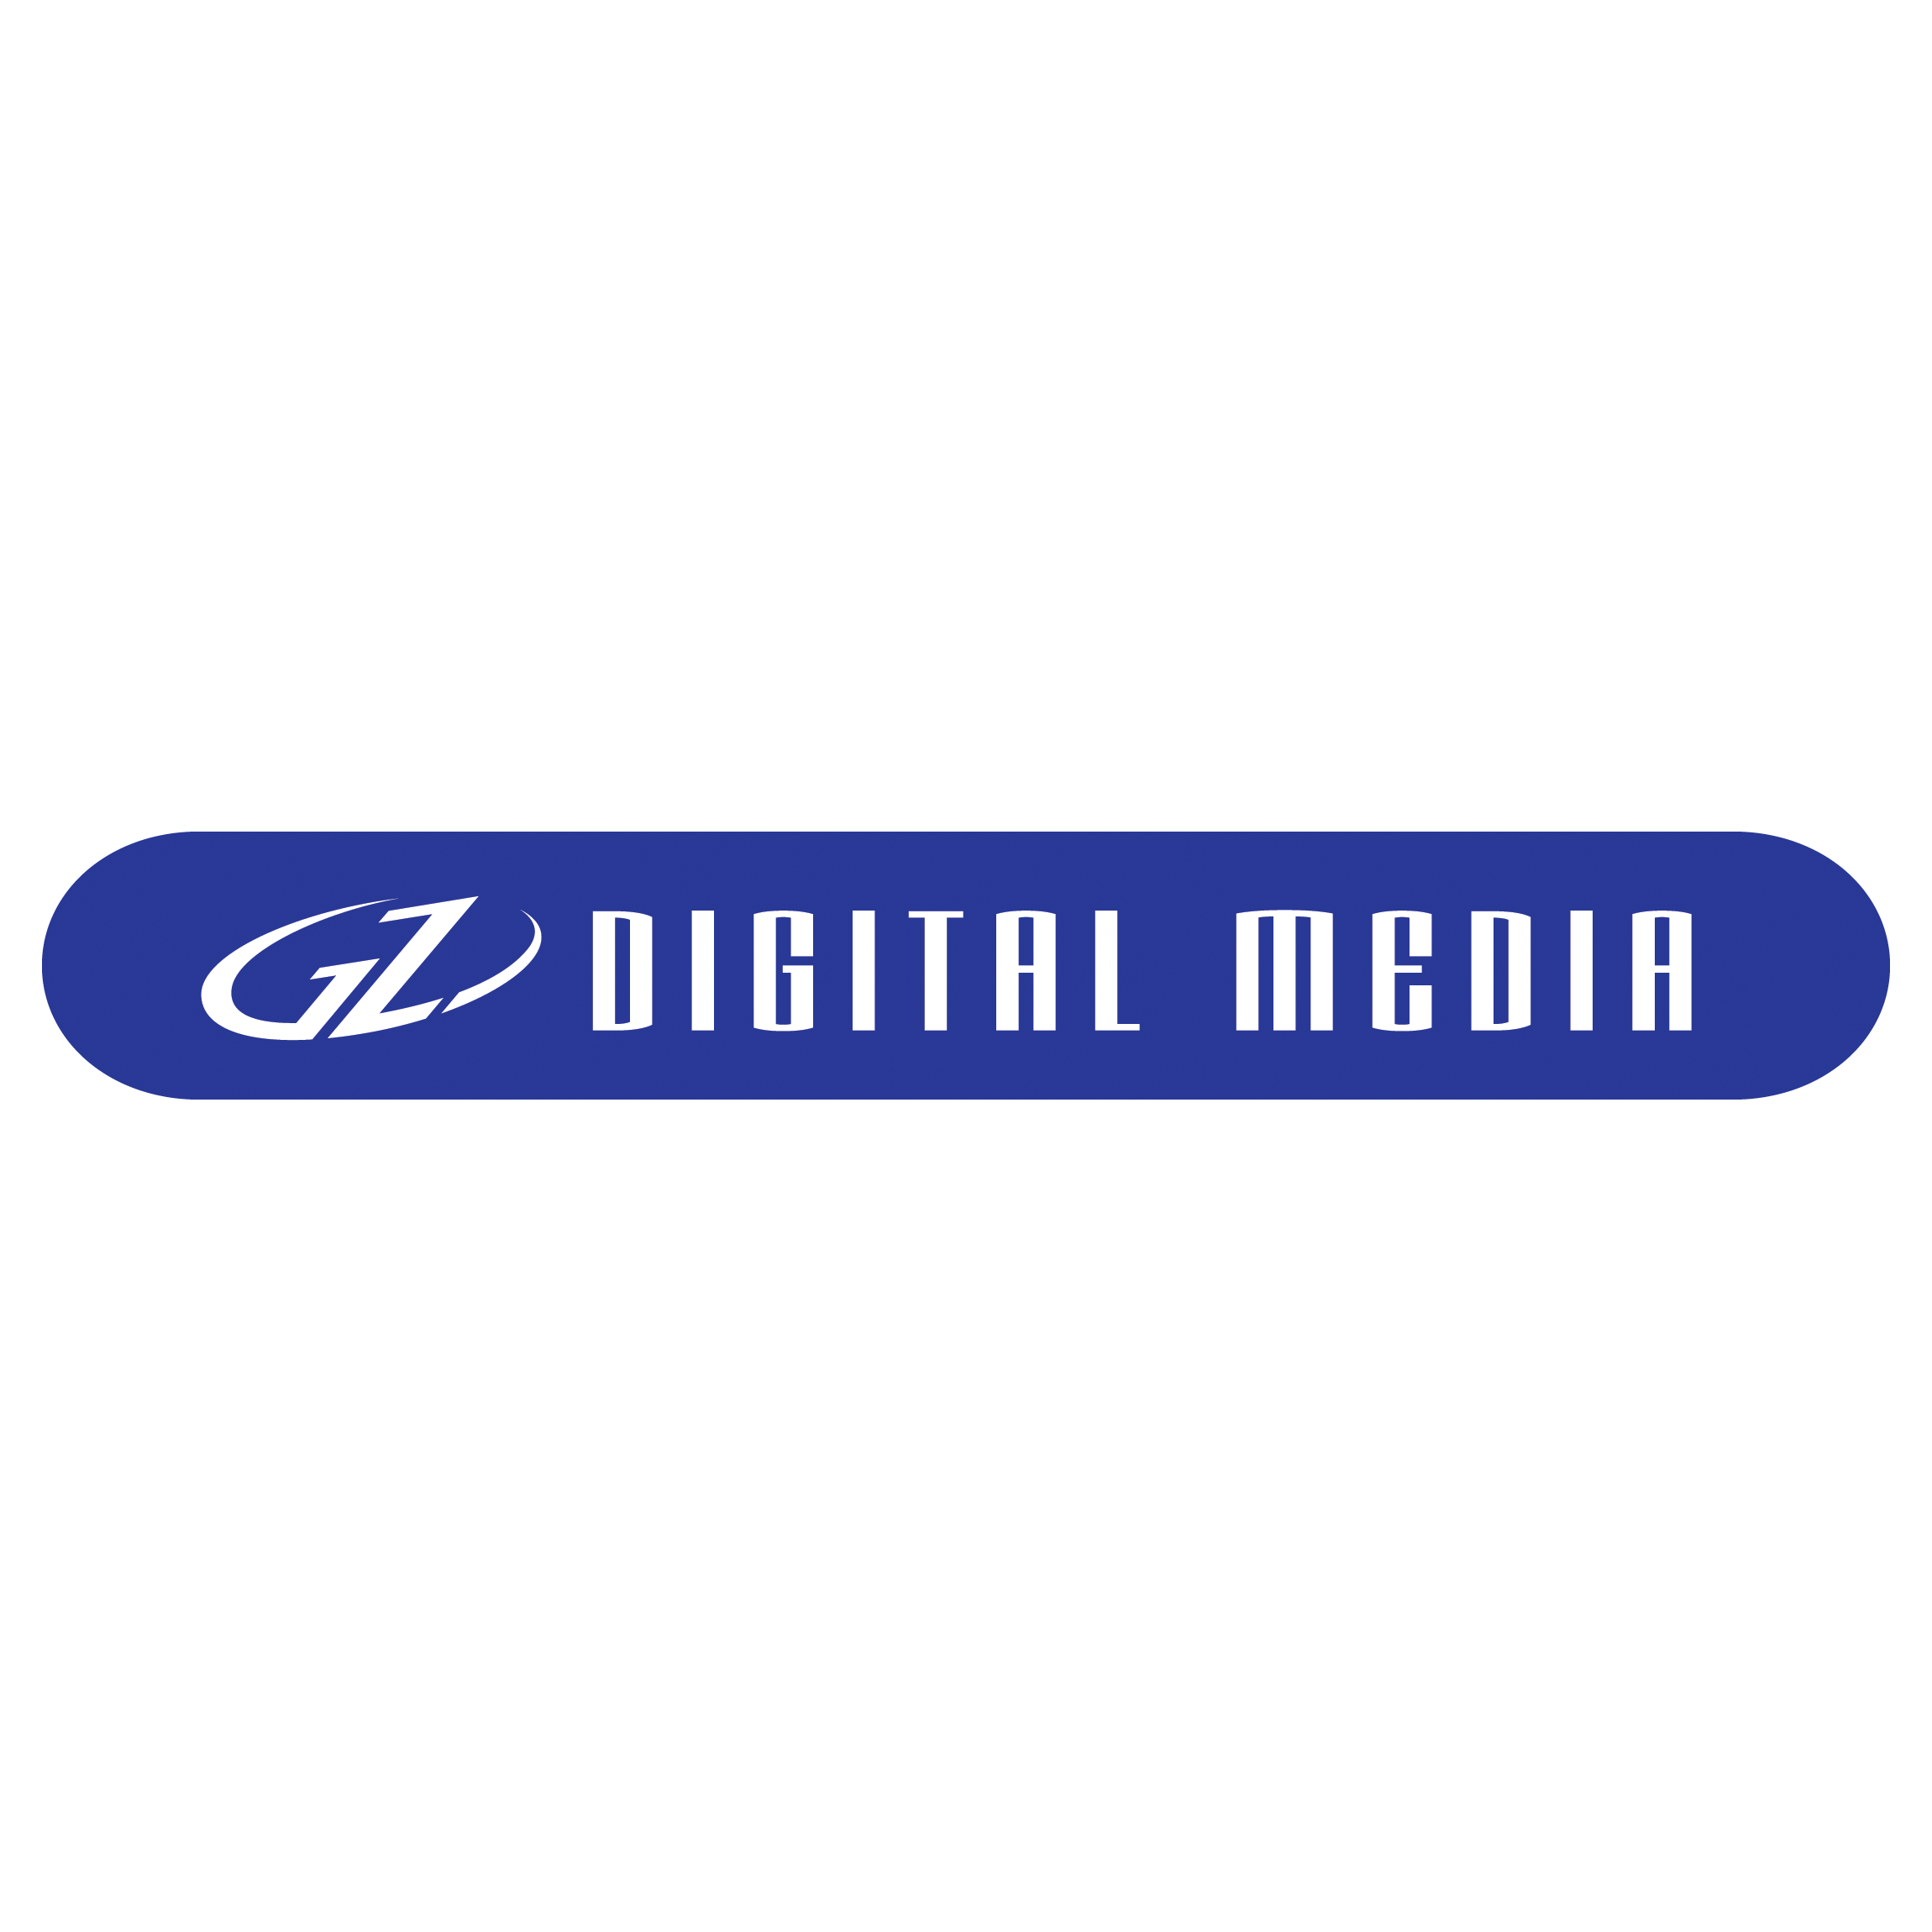 gz-digital-media-logo